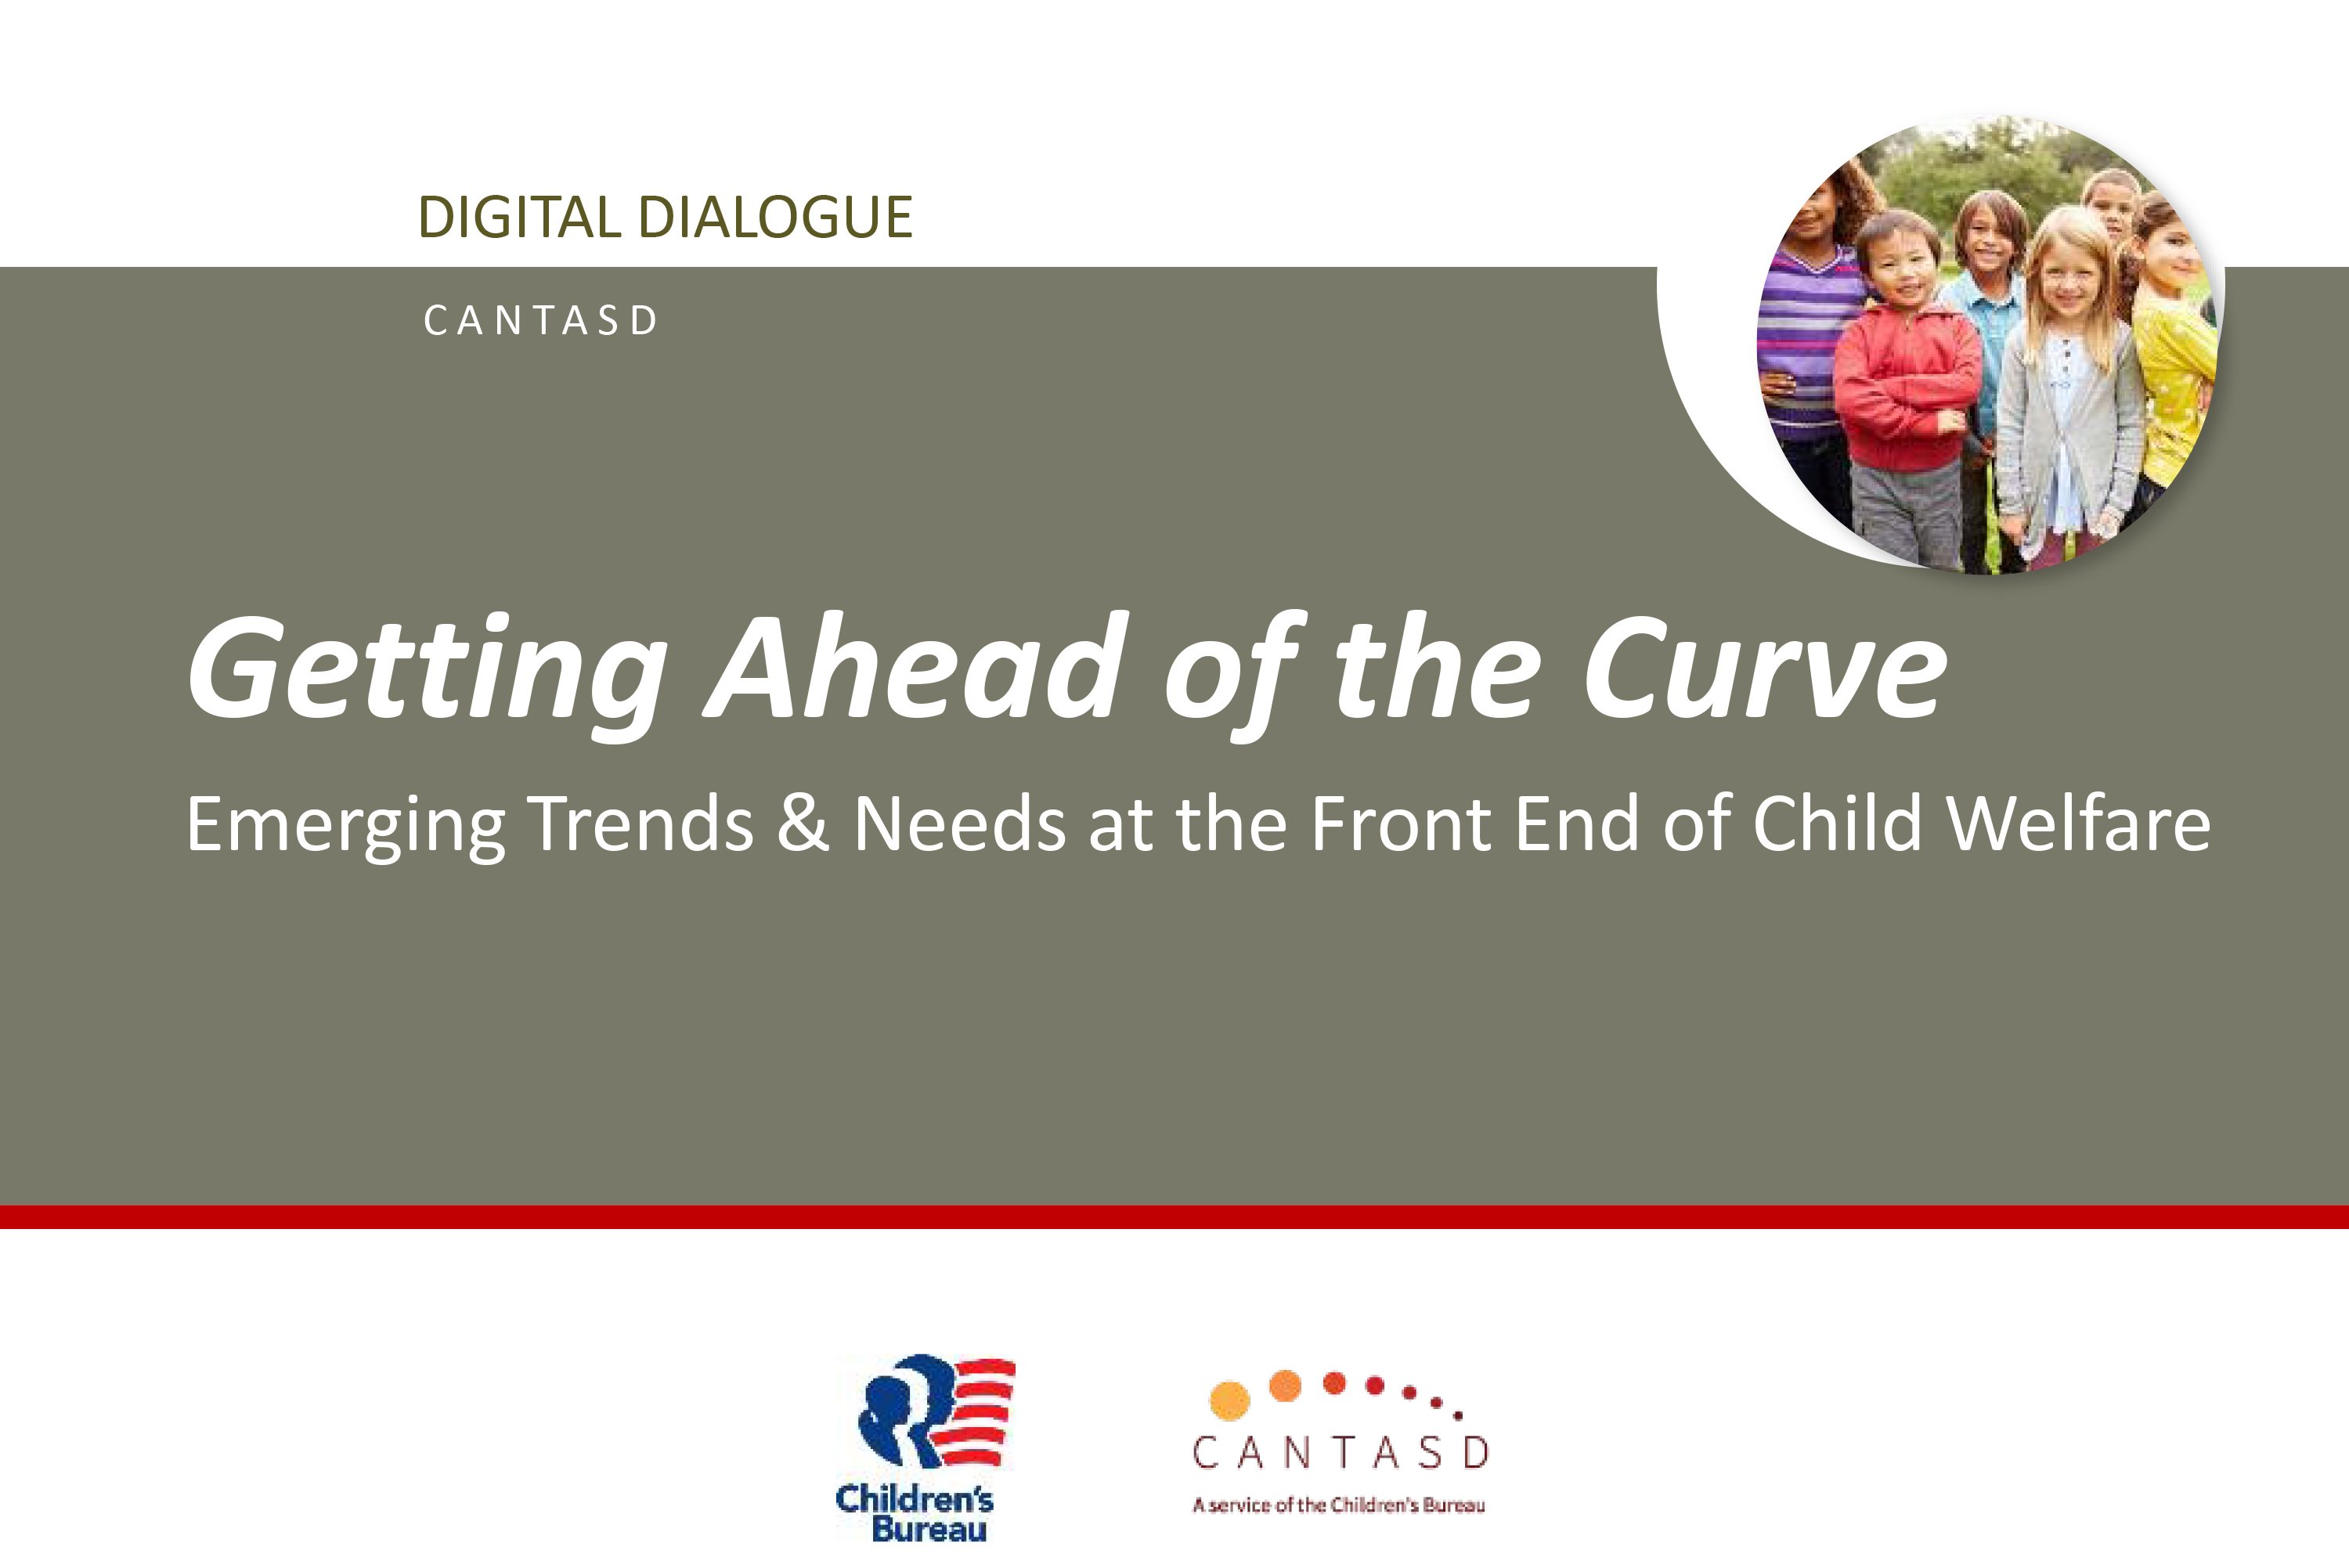 Getting Ahead of the Curve: Emerging Trends & Needs at the Front End of Child Welfare - This link opens in a new window.